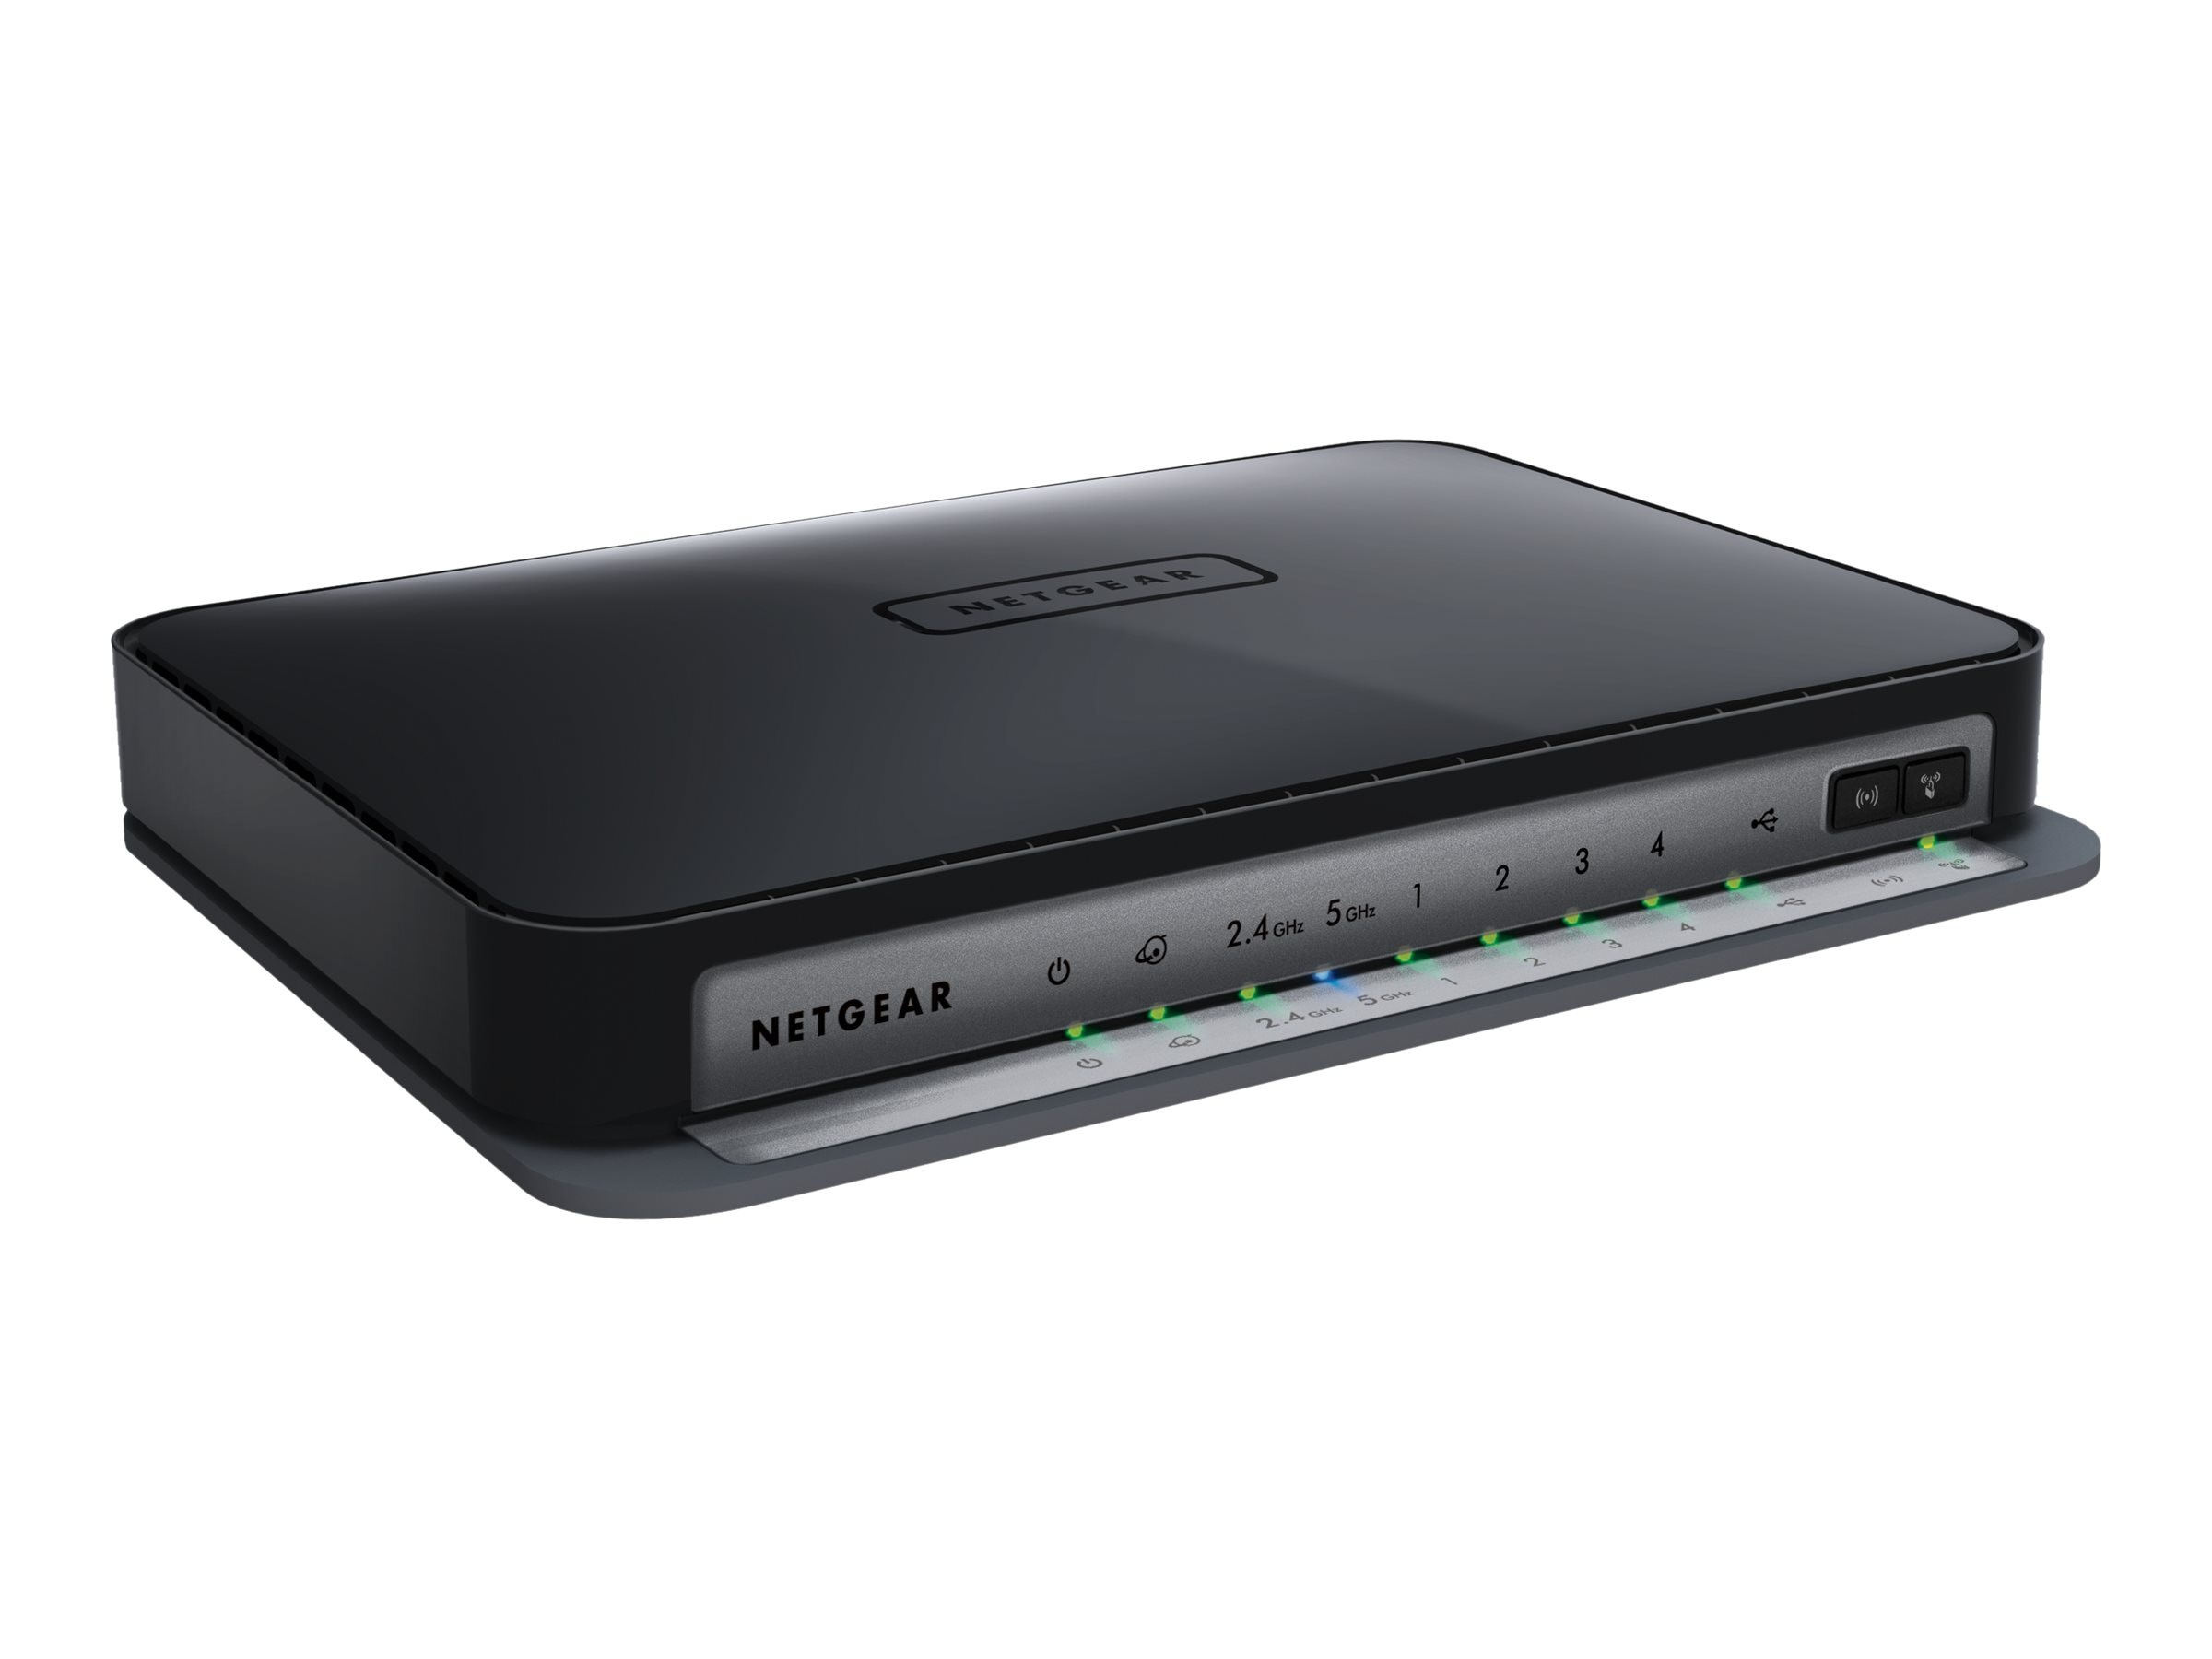 Netgear N750 Dual-Band Wireless-N Gigabit Router with 4-Port Ethernet Switch, WNDR4300-100NAS